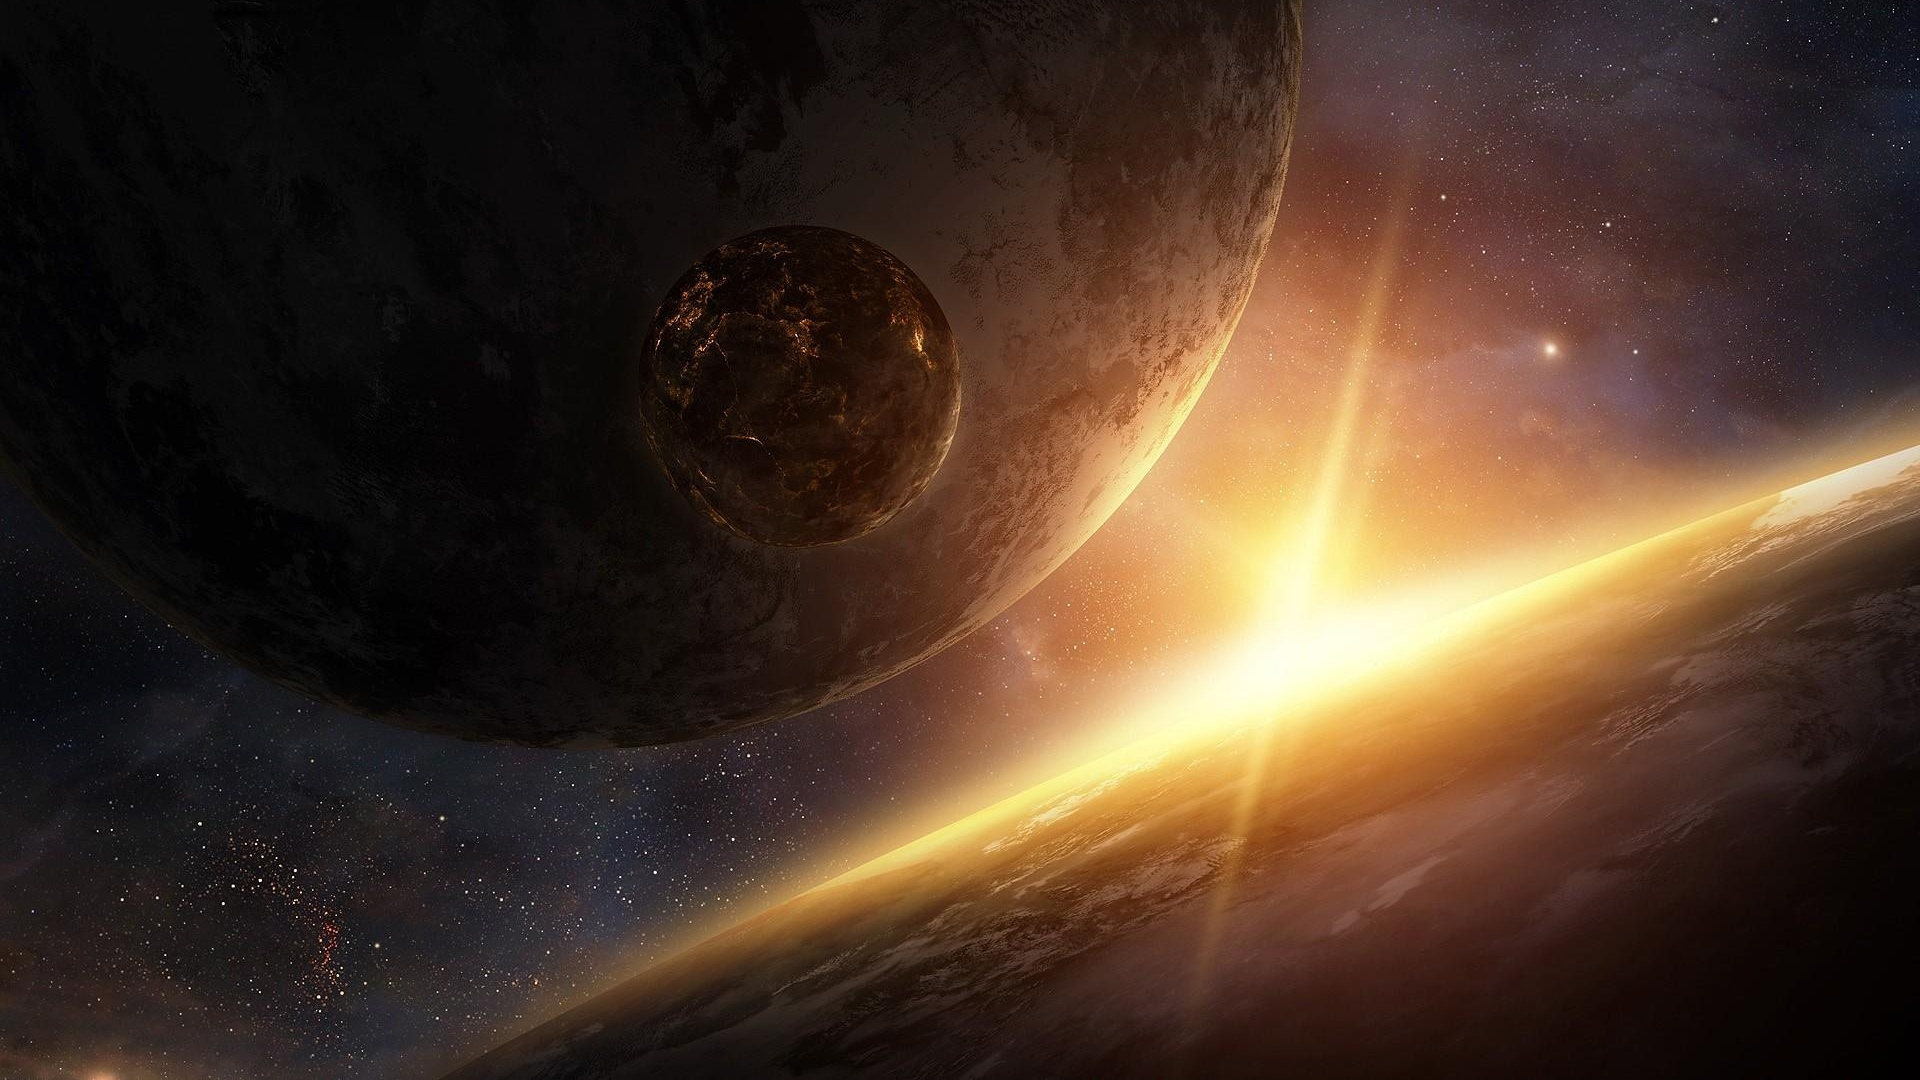 Get The Latest Planet Rays Light News Pictures And Videos Learn All About From Wallpapers4uorg Your Wallpaper Source